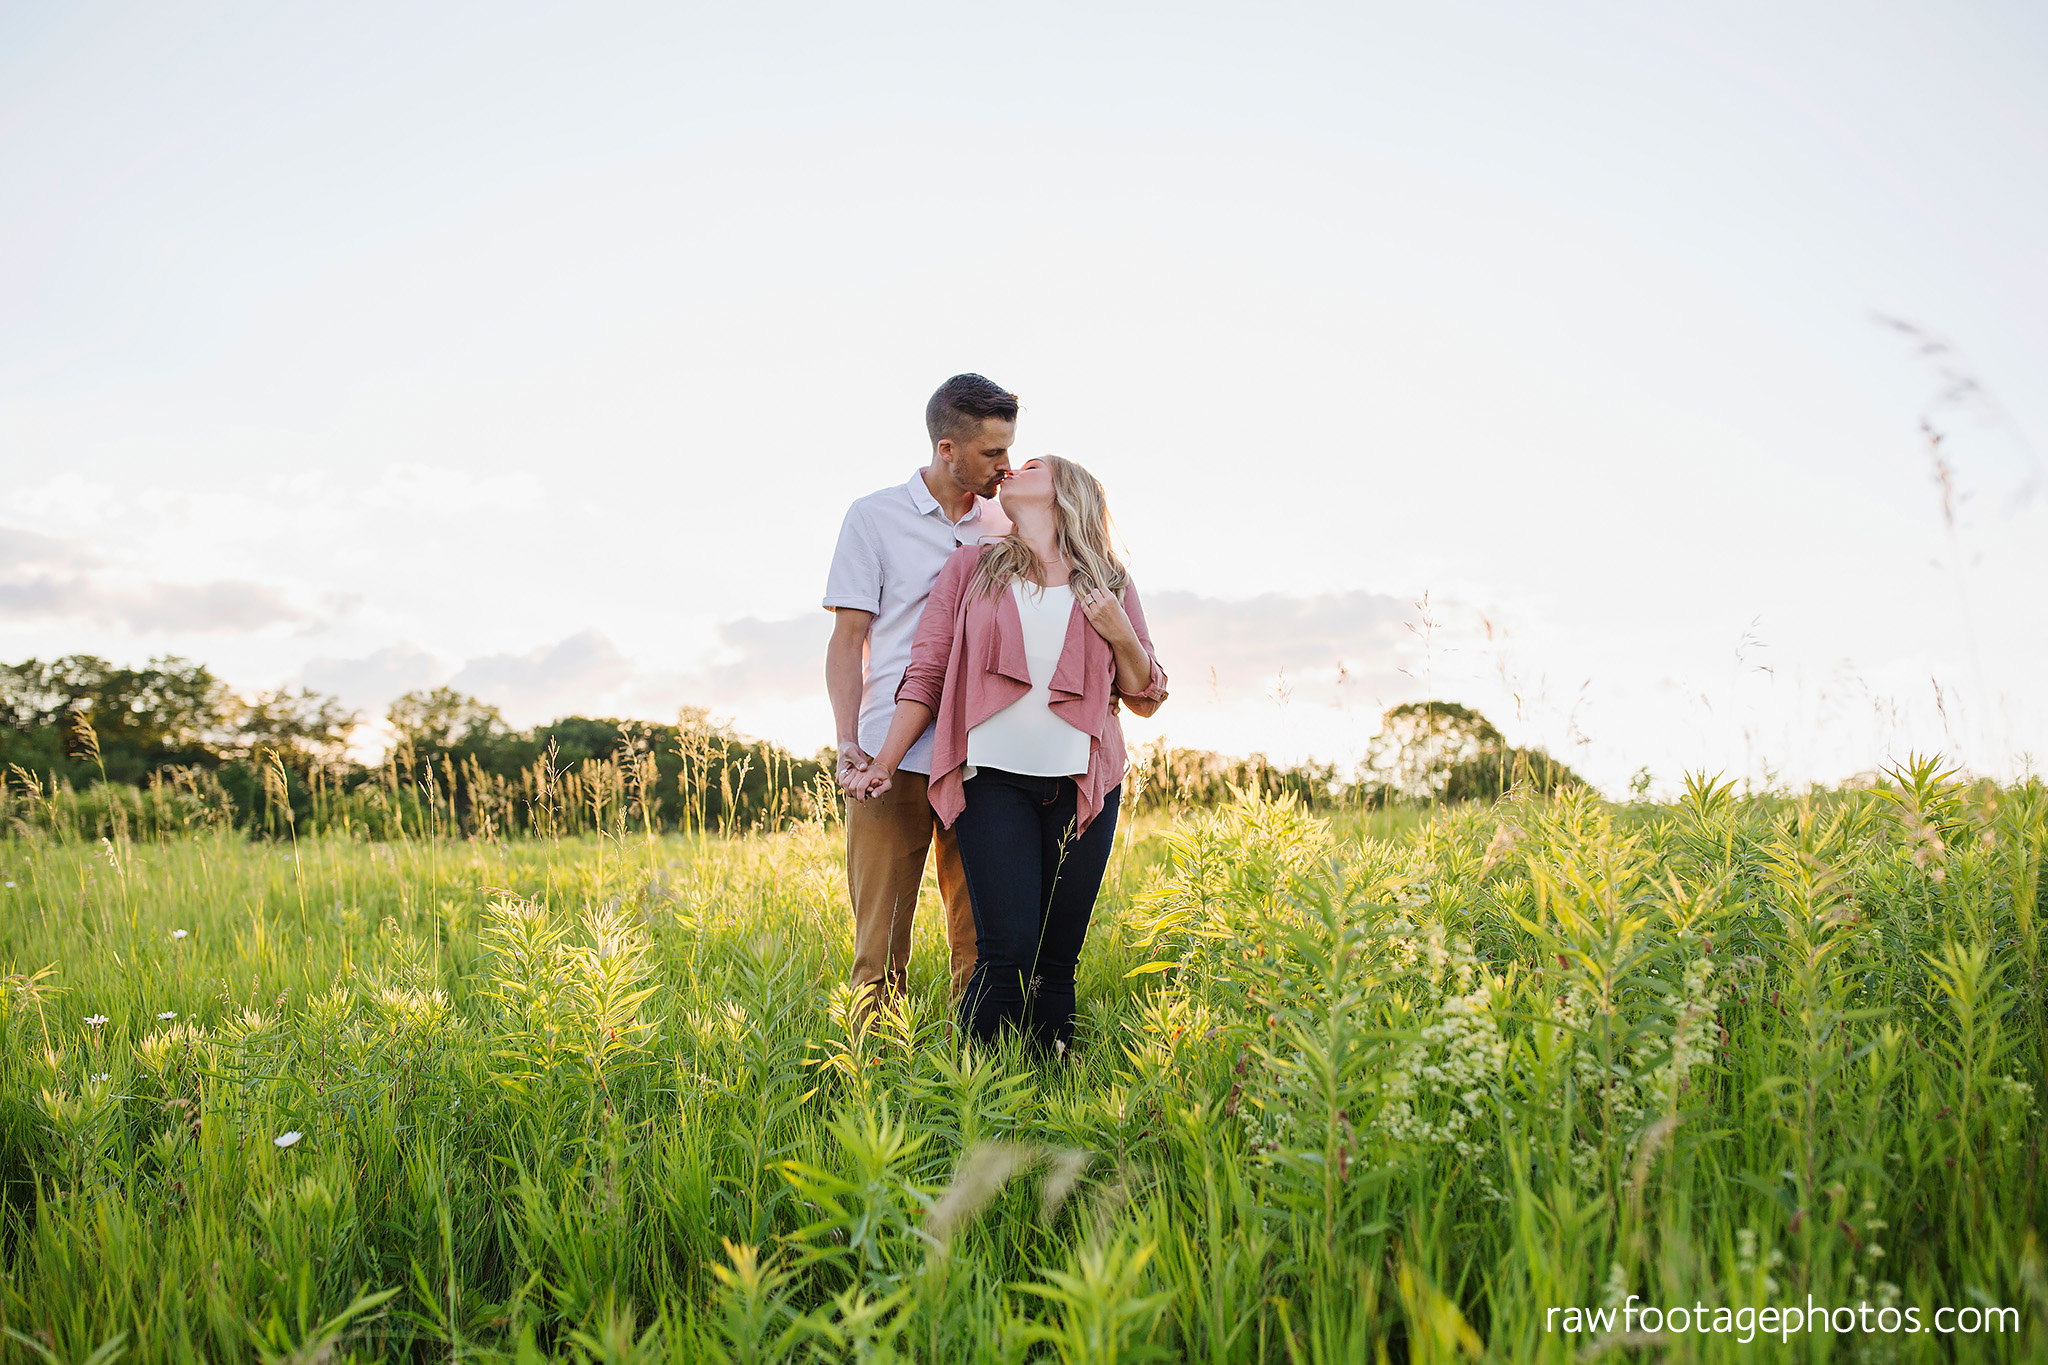 london_ontario_wedding_photographer-raw_footage_photography-mentoring-workshop-golden_hour-engagement_session024.jpg